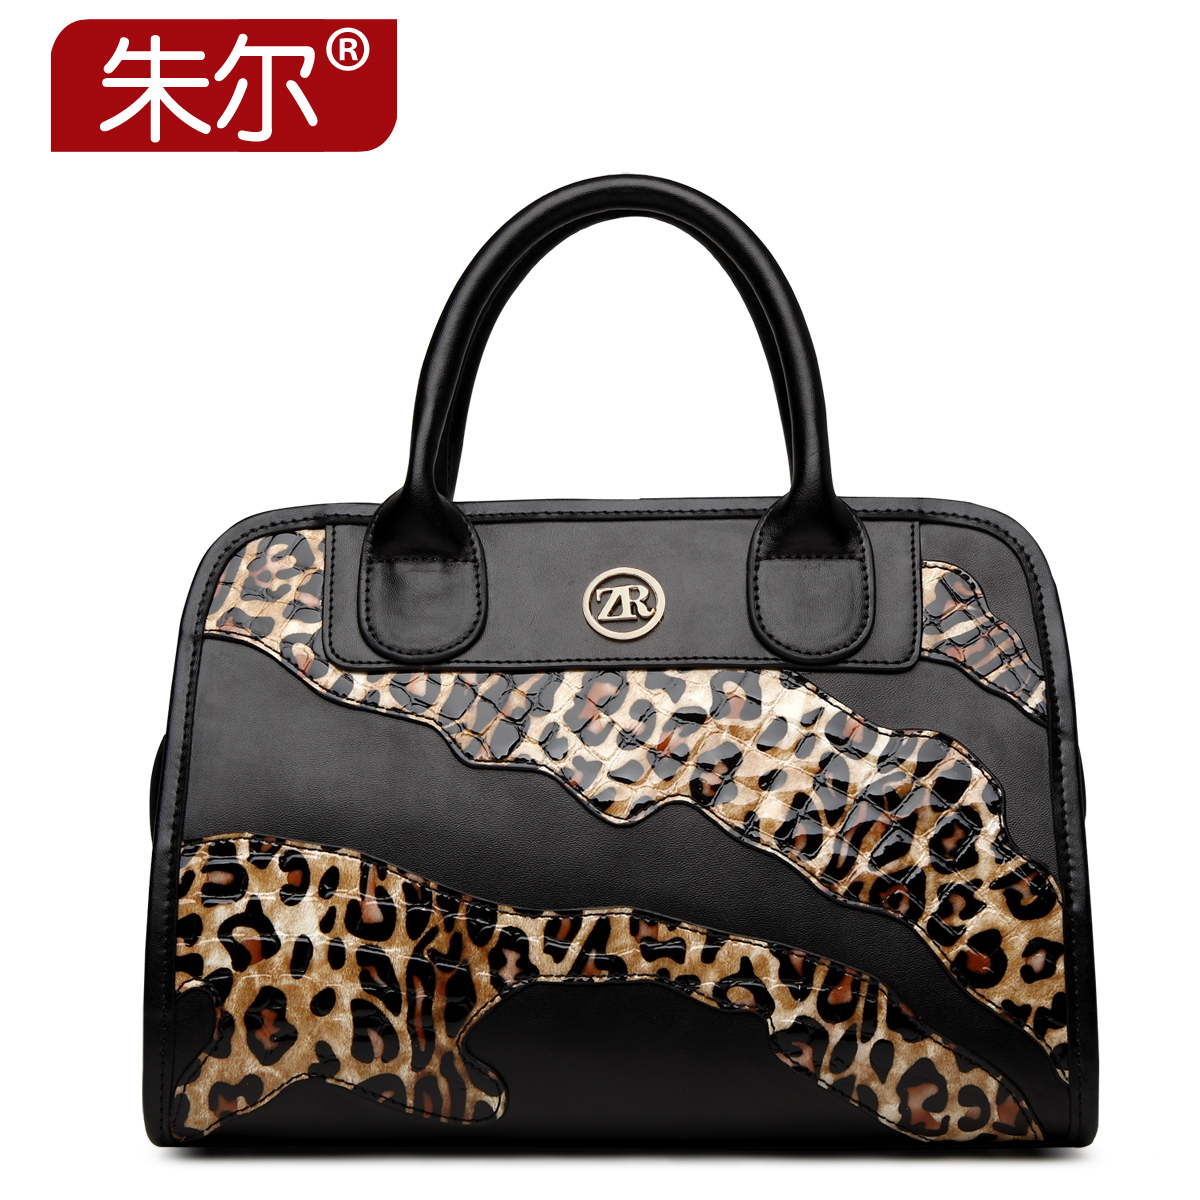 Fashion fashion cowhide women's handbag 2015 leopard print bags women's one shoulder handbag female